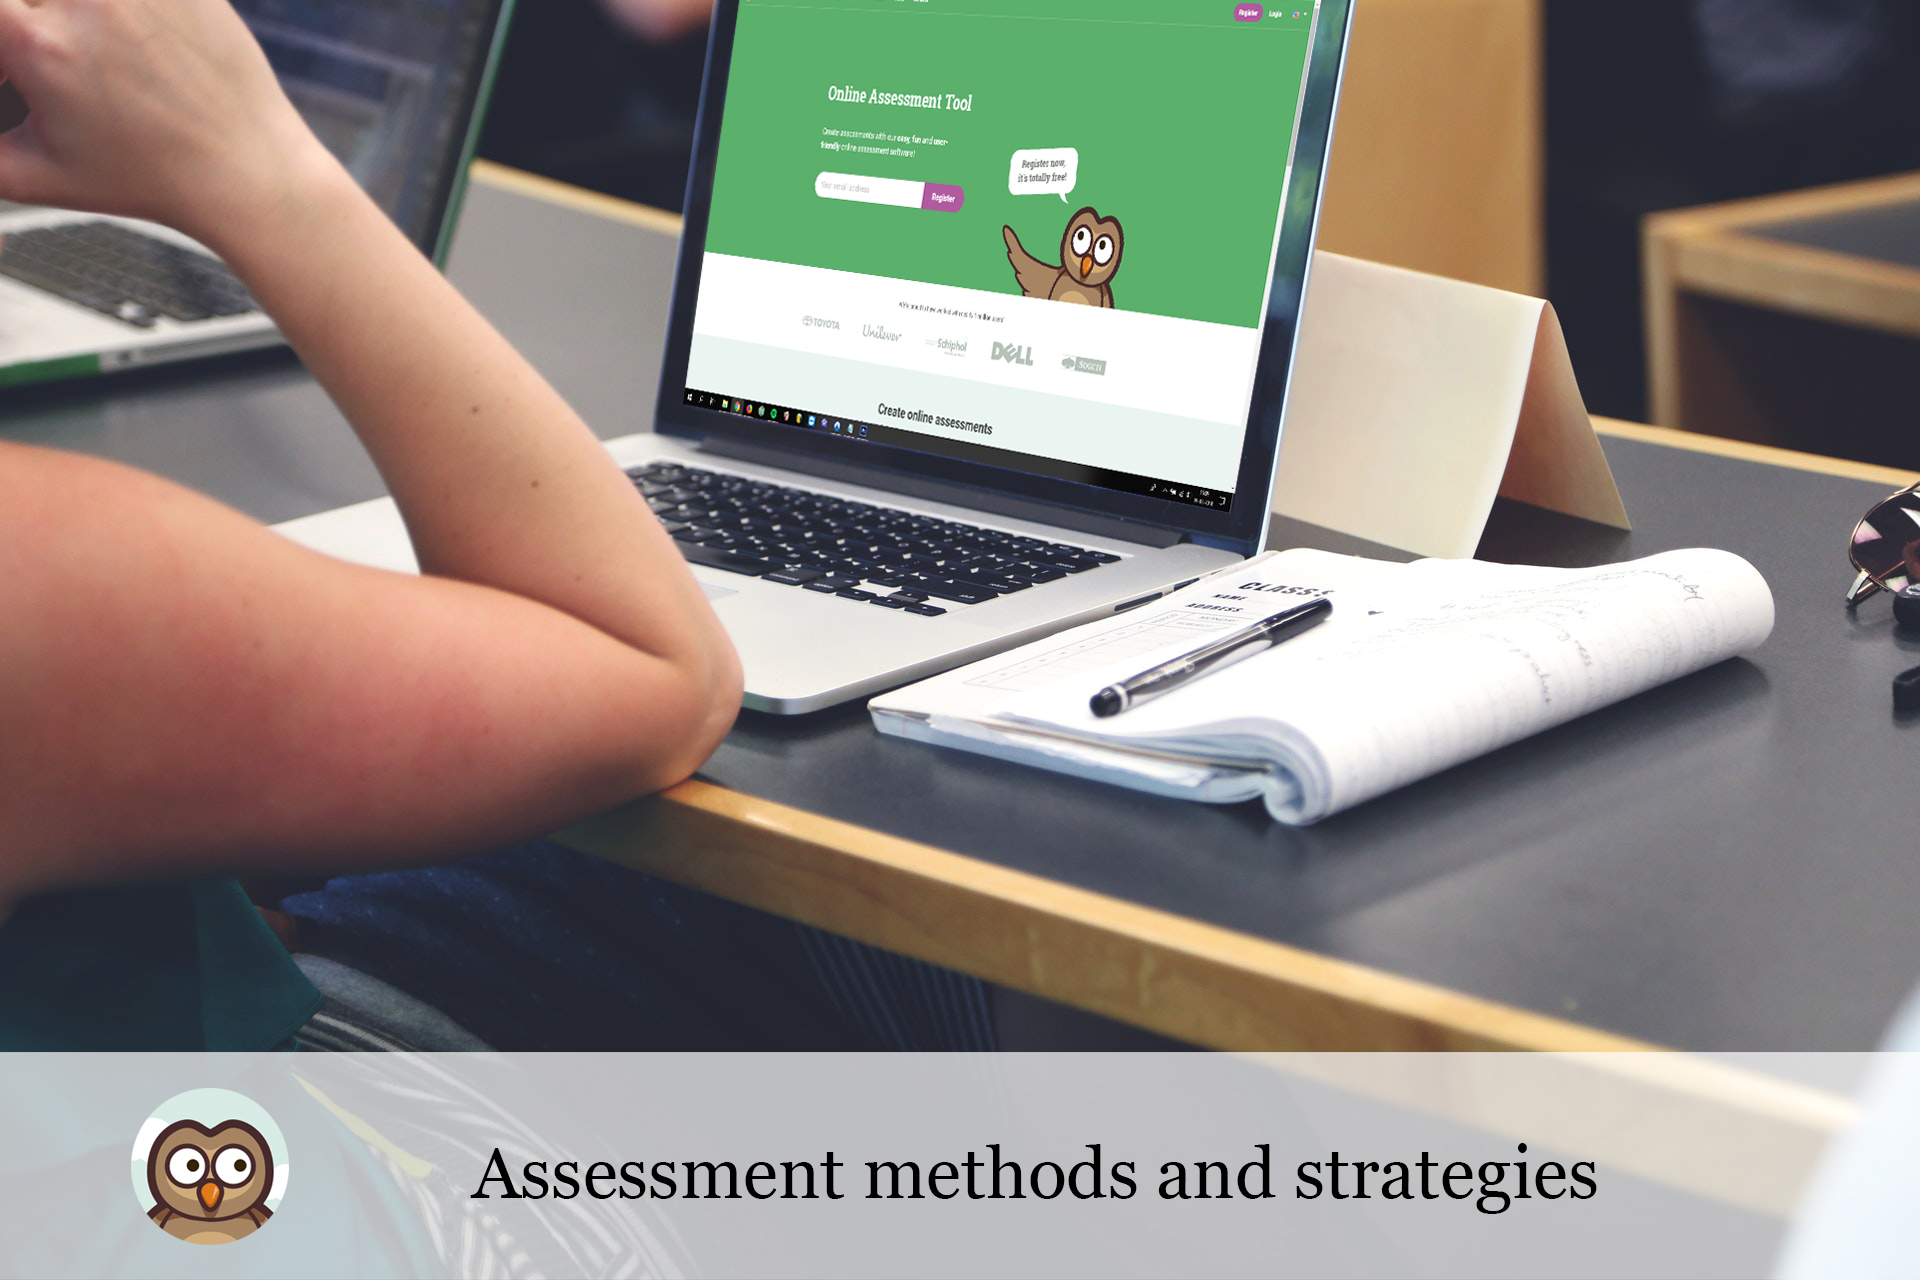 Assessment methods and strategies